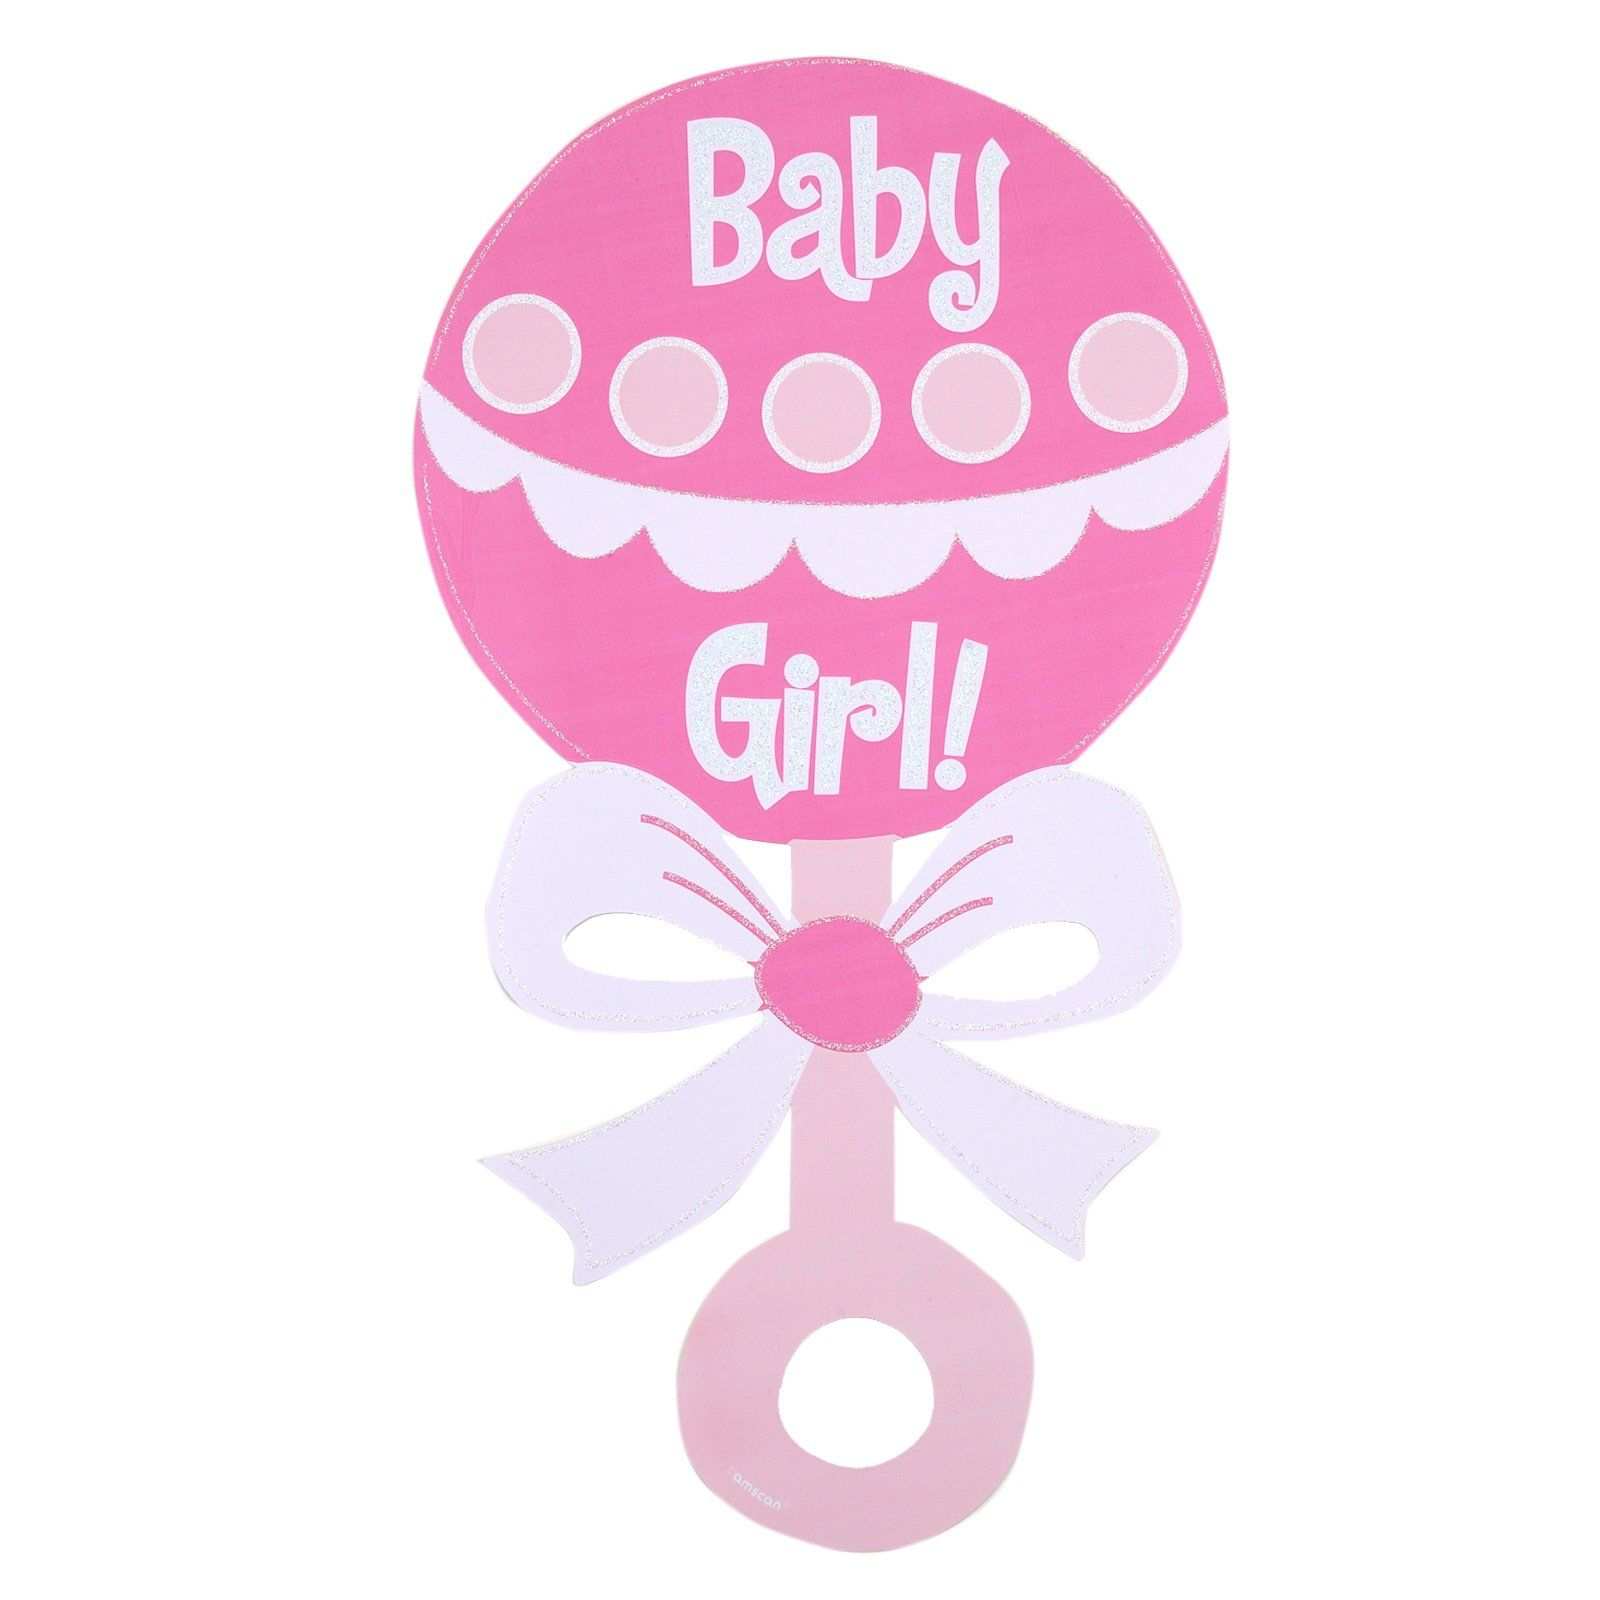 baby clipart girl baby girl rattle glitter cutout family rh pinterest ca baby rattle clipart images baby rattle clipart images